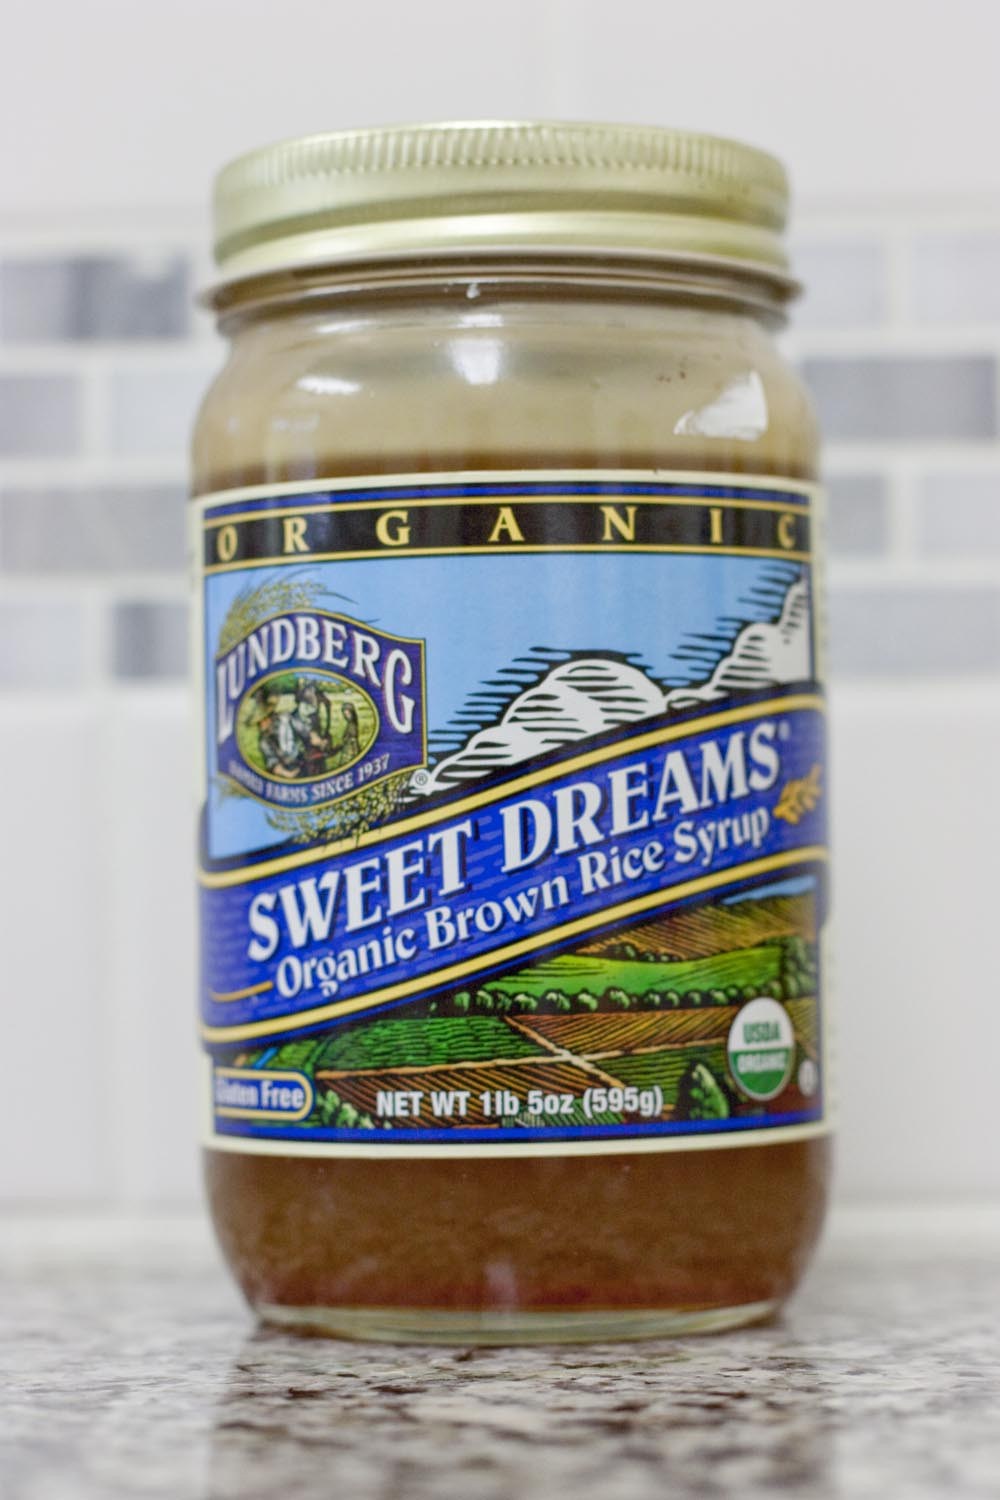 Is Brown Rice Syrup Healthy  Natural Sweeteners For Healthy Whole Food Diets Think